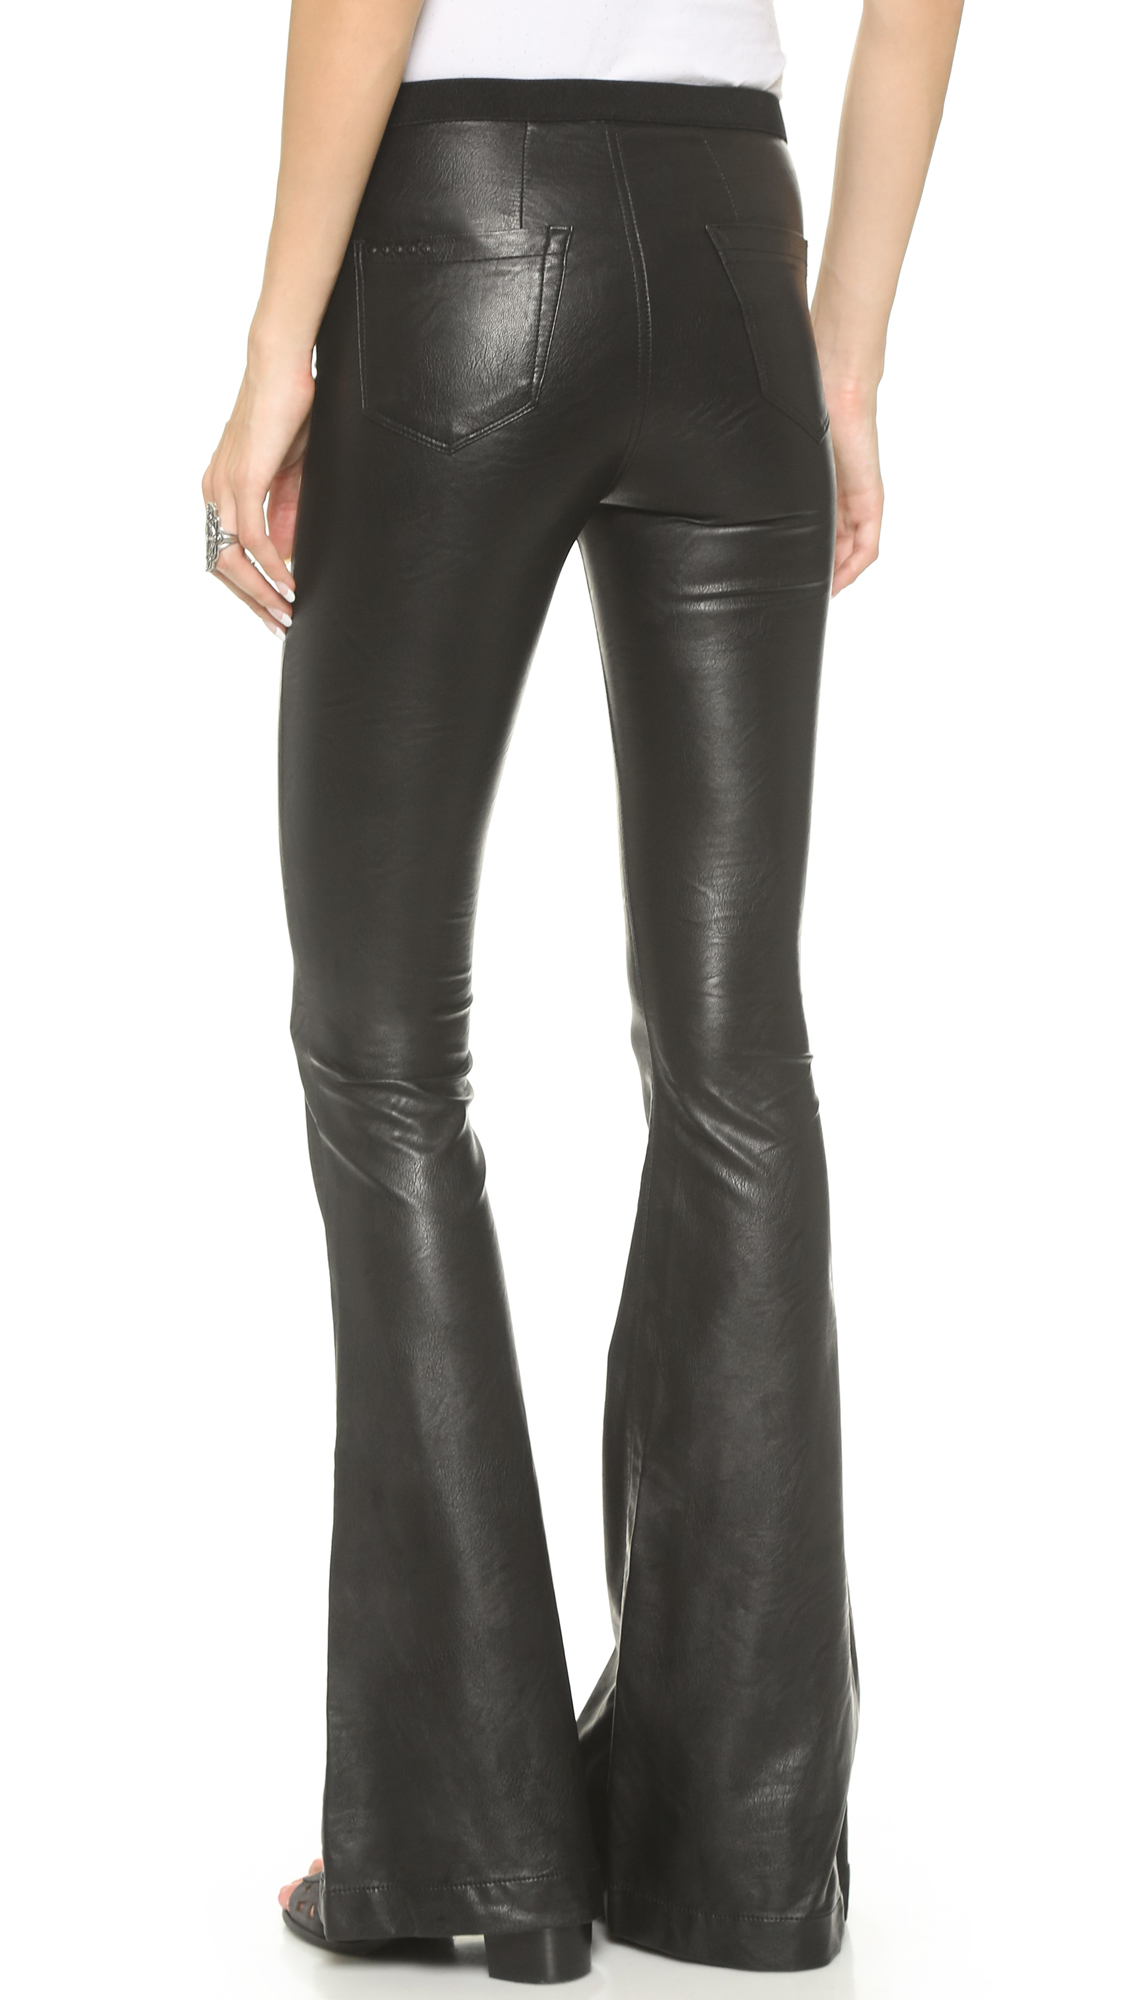 ★UNIVERSAL STANDARD Potenza Faux Leather Pants (Plus Size)™ ^^ If you are looking for UNIVERSAL STANDARD Potenza Faux Leather Pants (Plus Size) Yes you see this. online shopping has now gone a long way; it has changed the way consumers and entrepreneurs do busine.